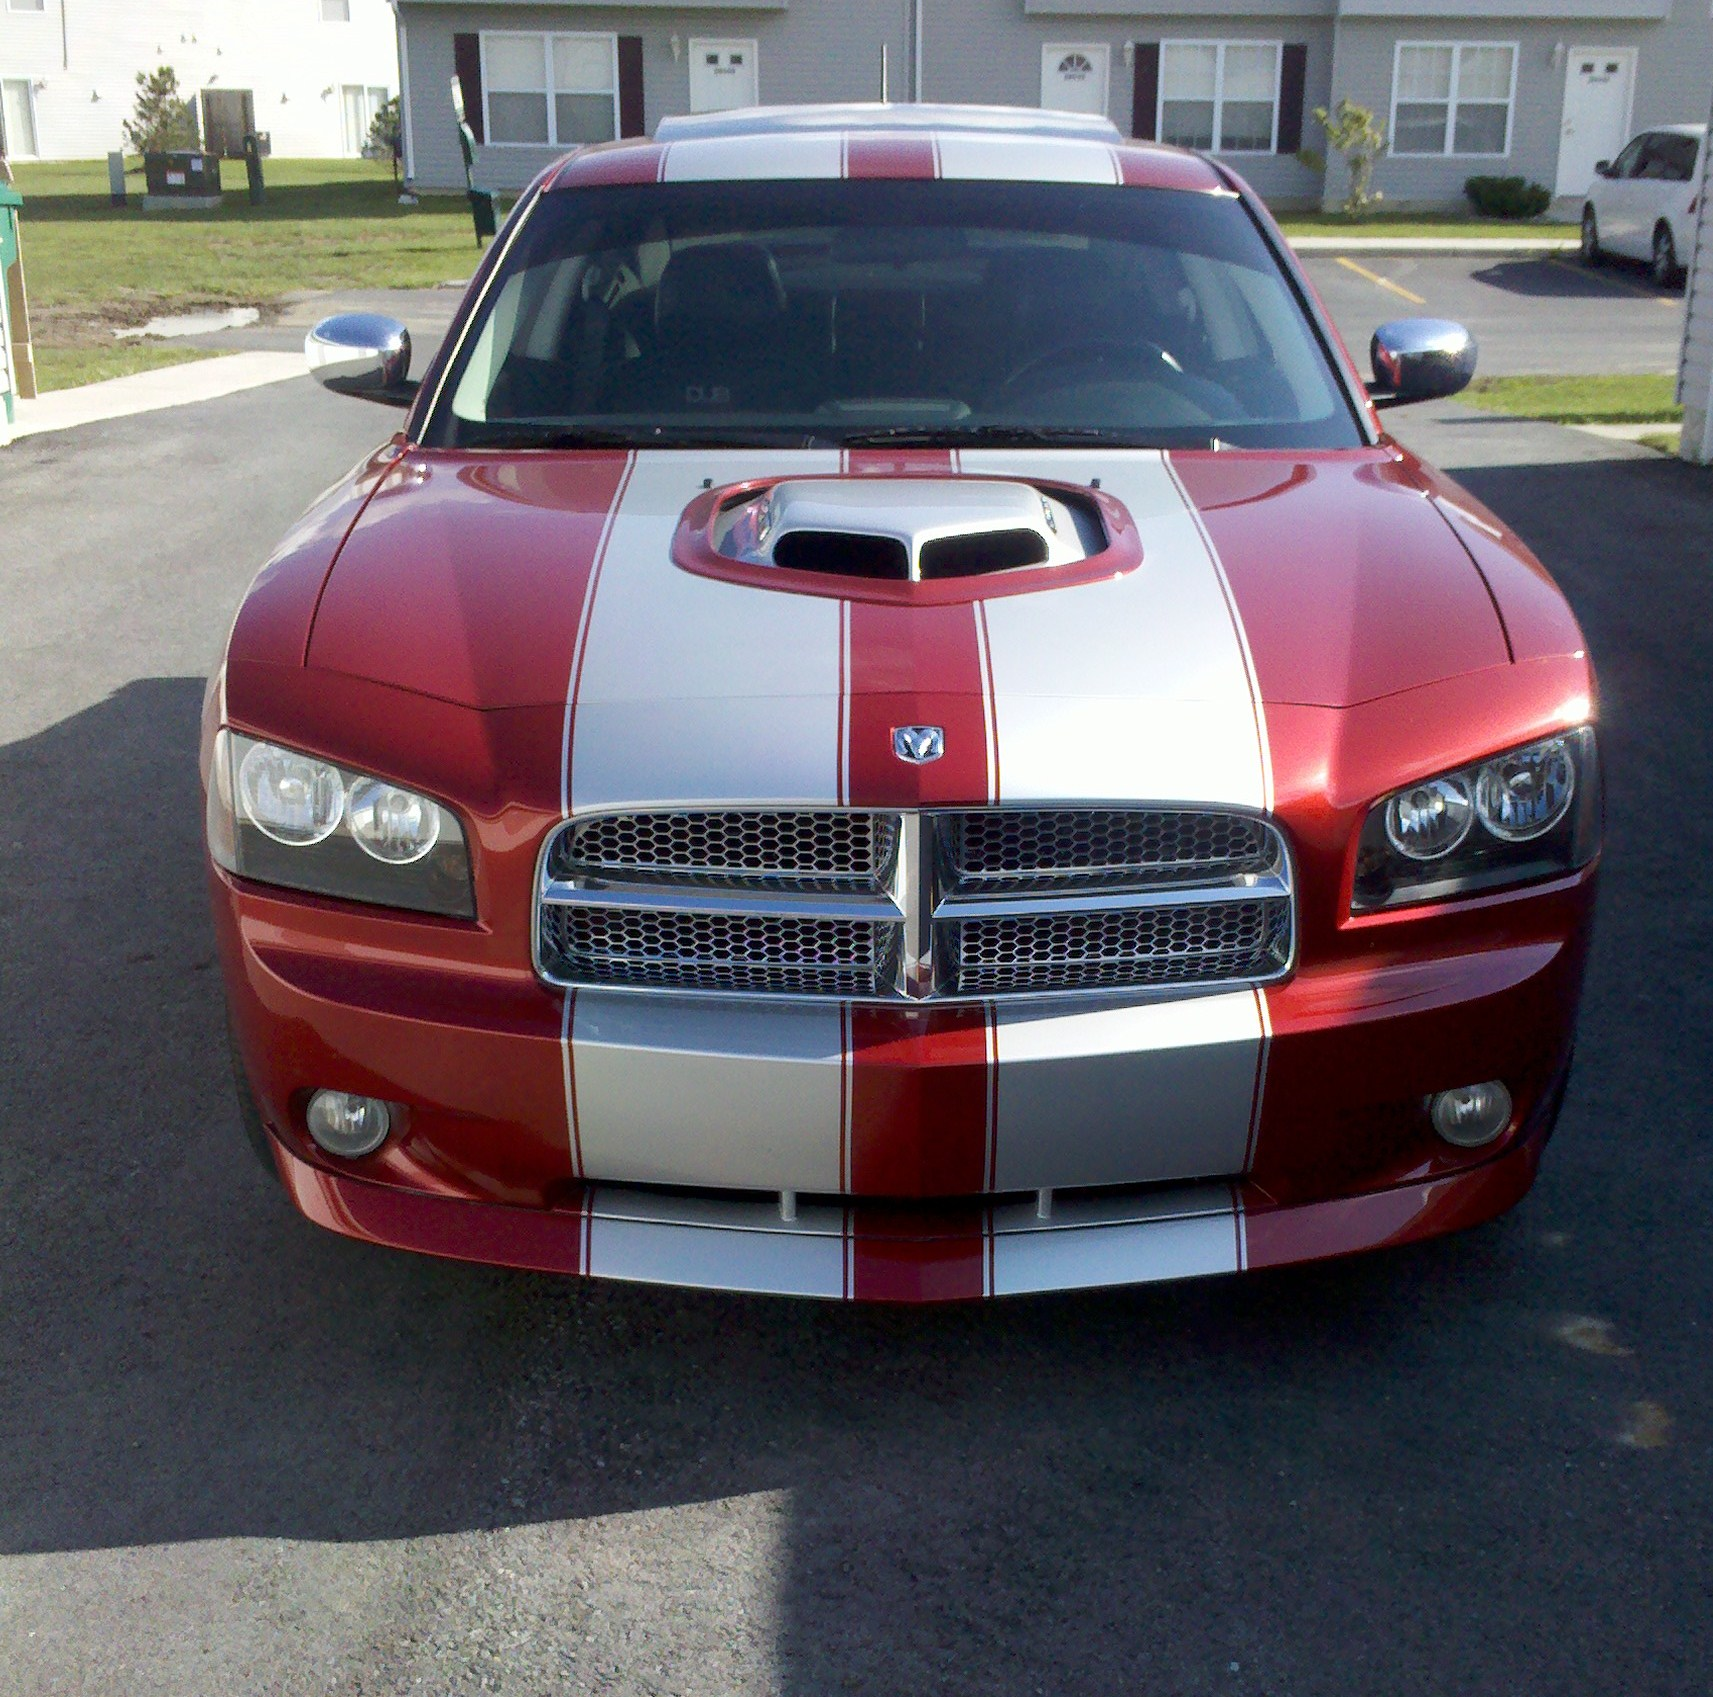 elegant 2006 dodge charger hood scoop aratorn sport cars. Black Bedroom Furniture Sets. Home Design Ideas